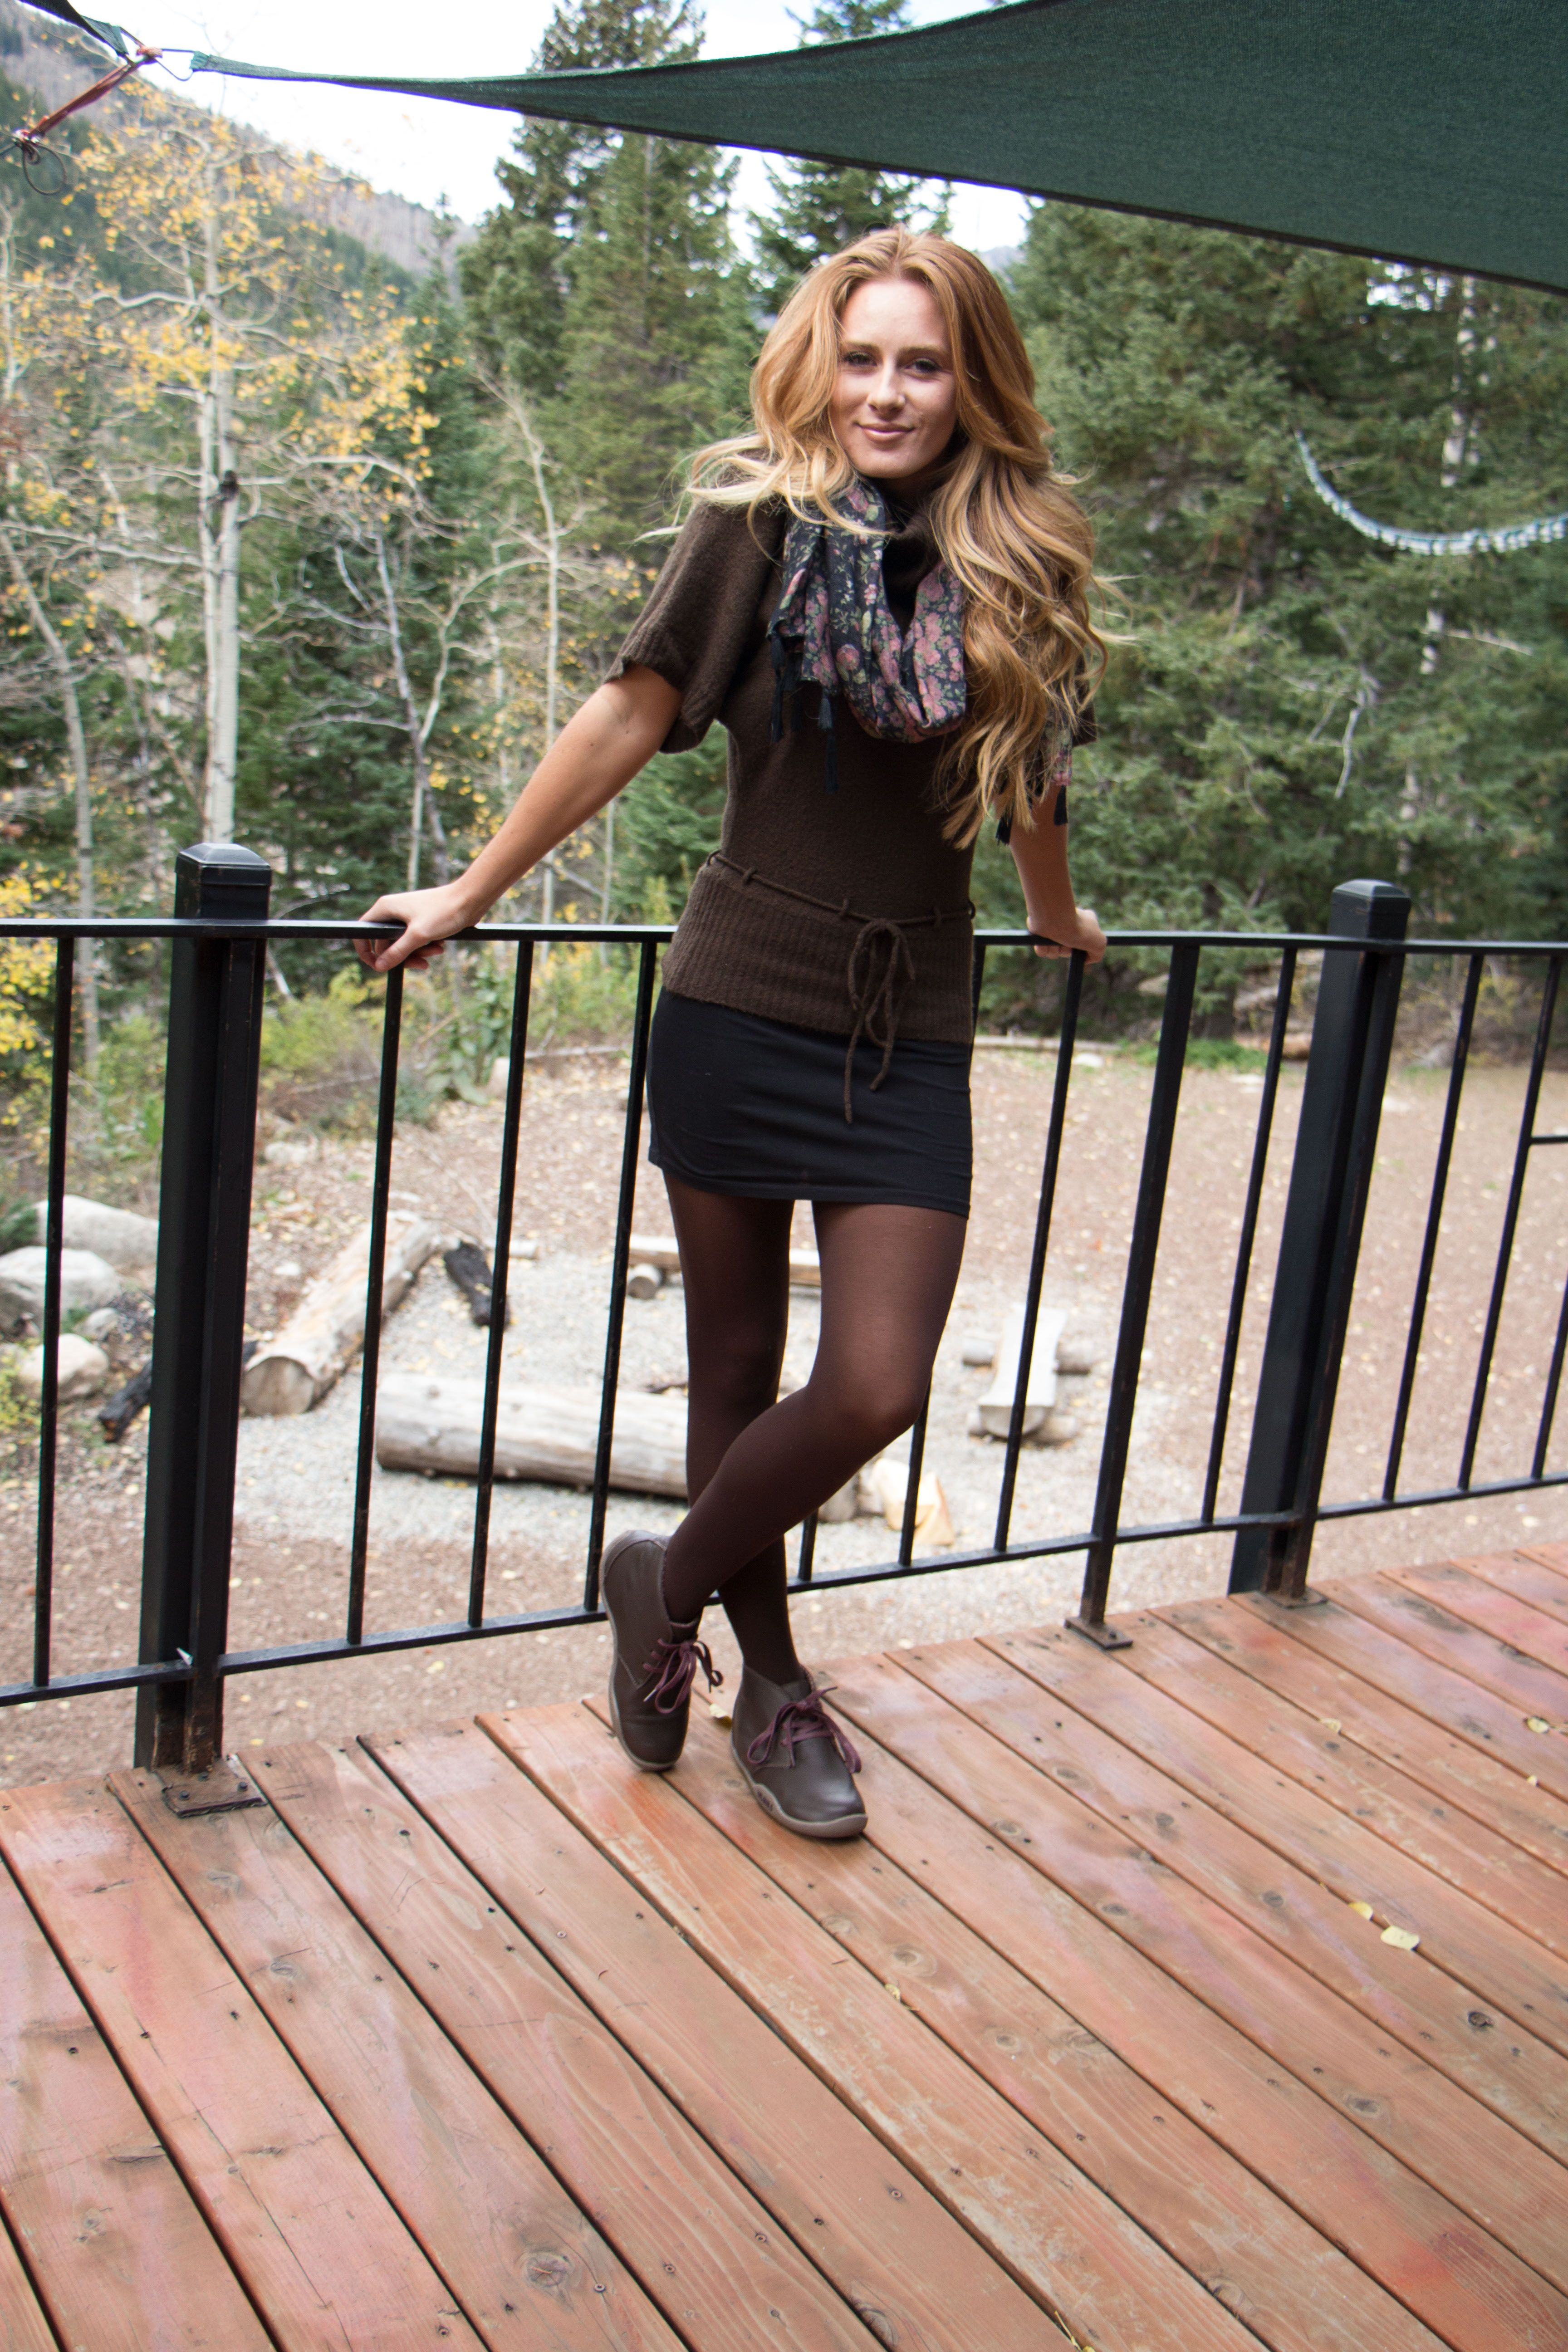 Chukka boots outfit for women. Check out this cute Chukka style ...